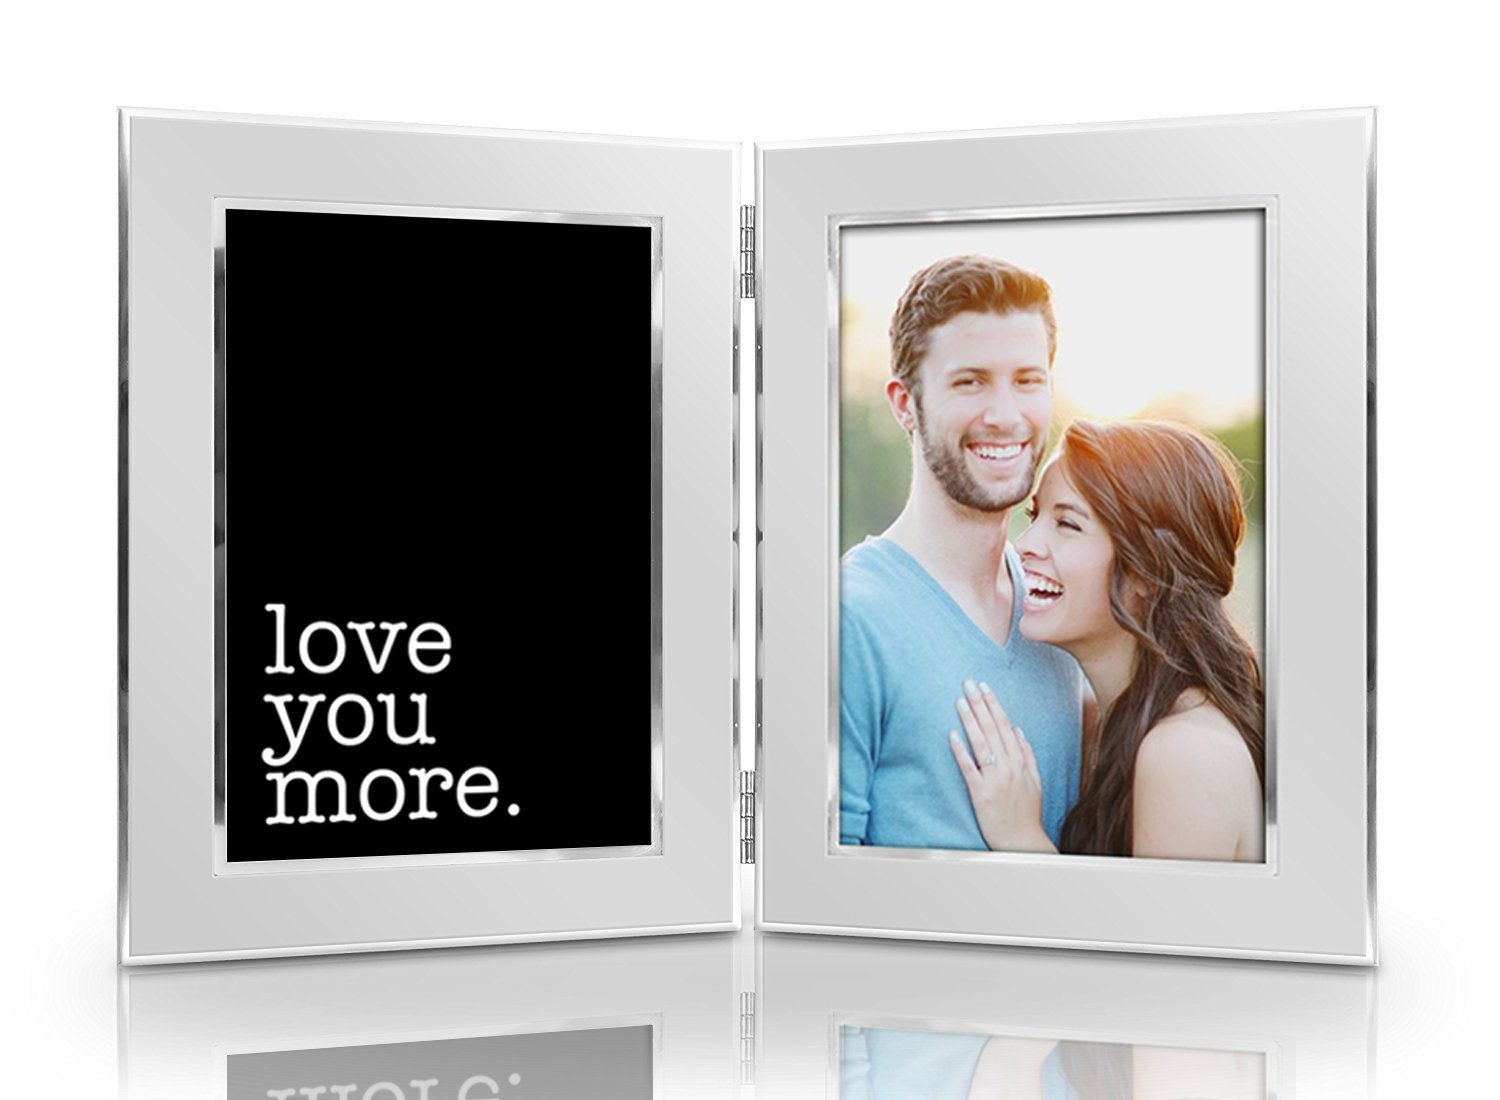 Humor Us Home Goods Love You More Picture Frame Set - Premium Double Hinged Photo Frames - Gift for Dad, Husband, Grandpa, Men - Perfect Present for His Birthday, Father's Day, Christmas